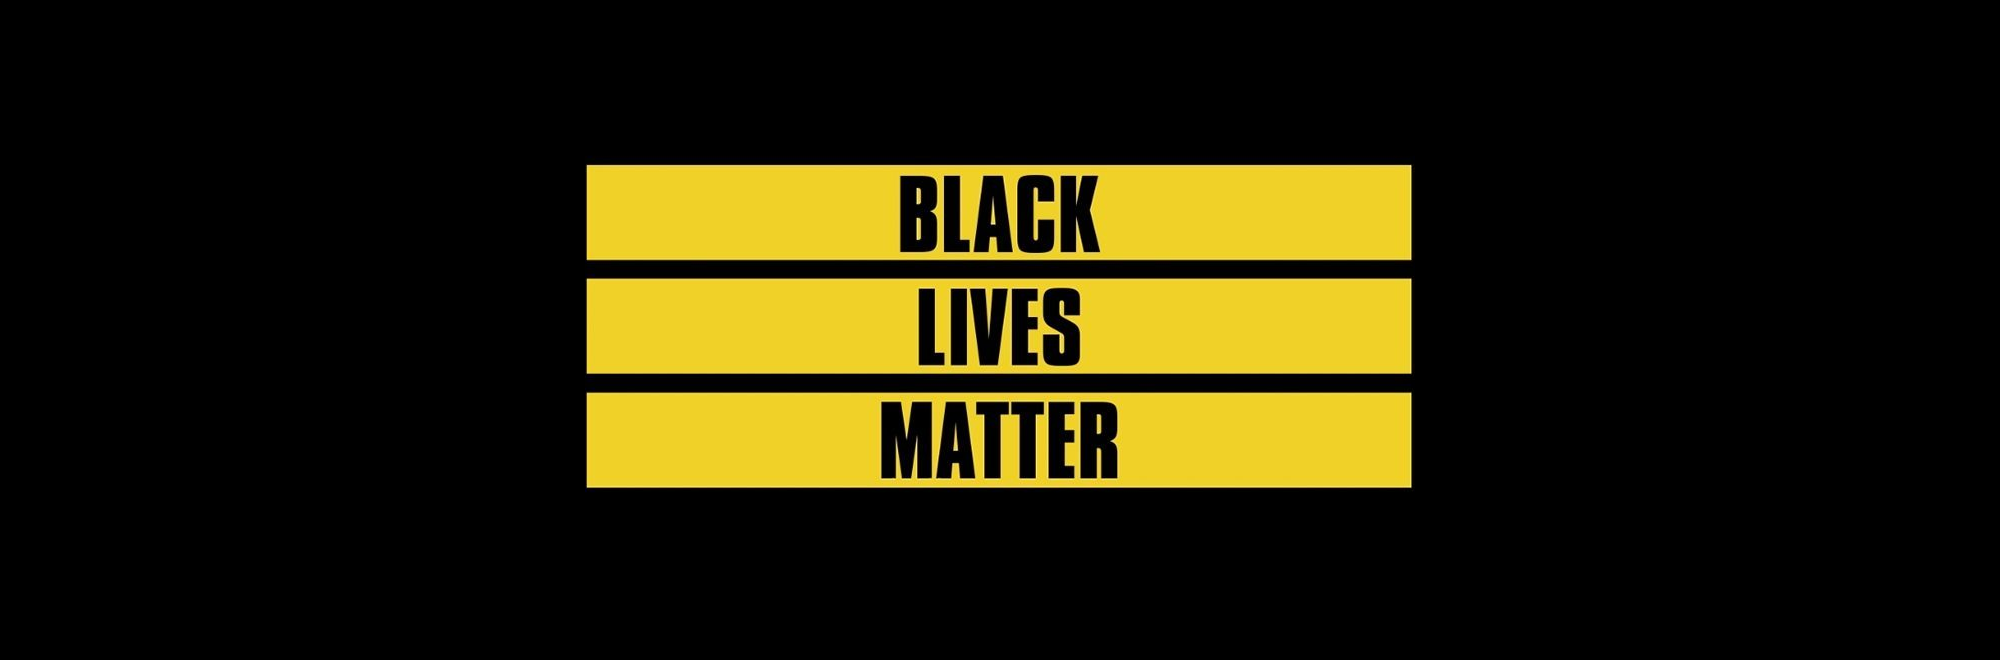 A strong message from W+K as they commit to the Black Lives Matter movement to tackle institutional racism